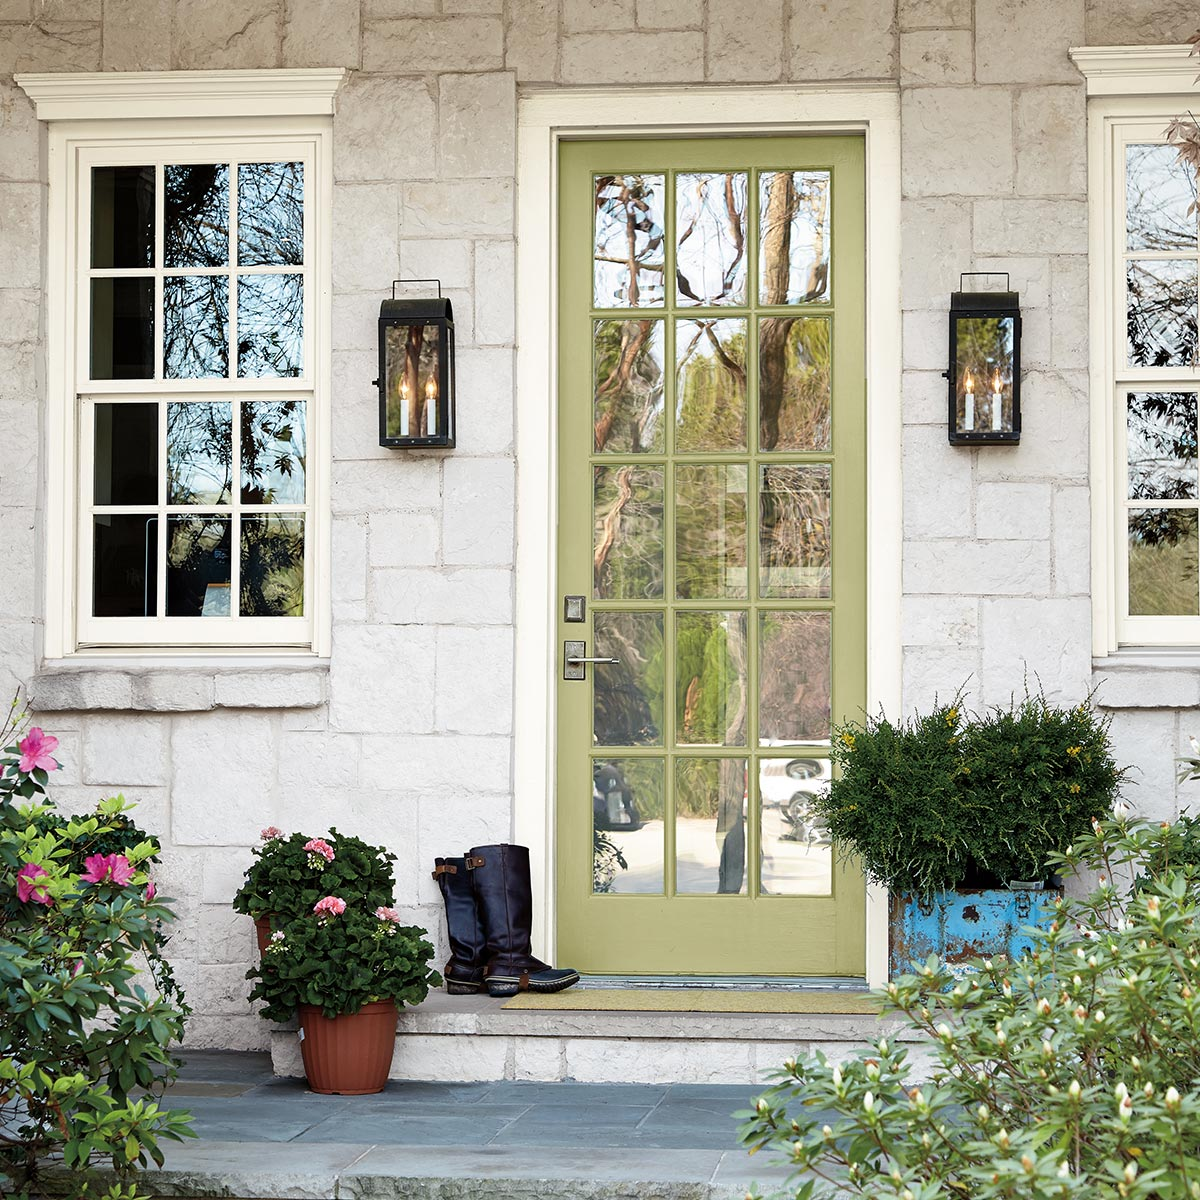 Front door is painted Behr Back to Nature - the 2020 Color of the year, bringing a calm yellowy-green option with a natural vibe! #paintcolor #greenpaint #calmpaintcolor